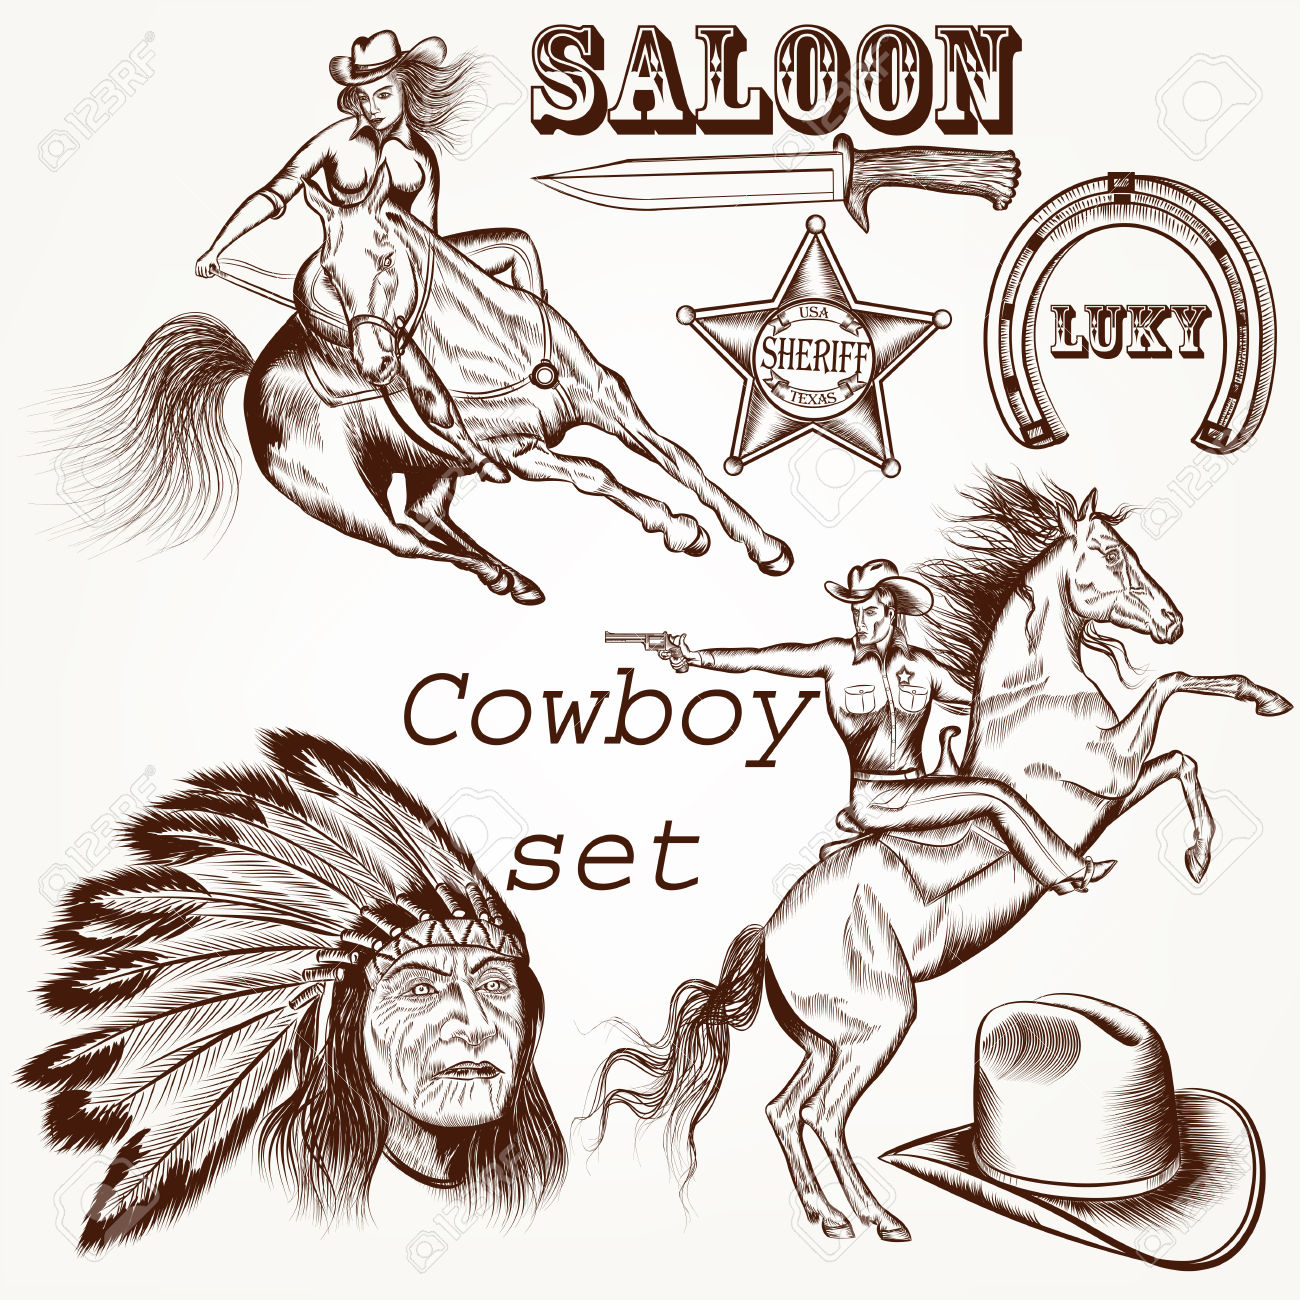 hight resolution of 964 cowboys and indians stock illustrations cliparts and royalty